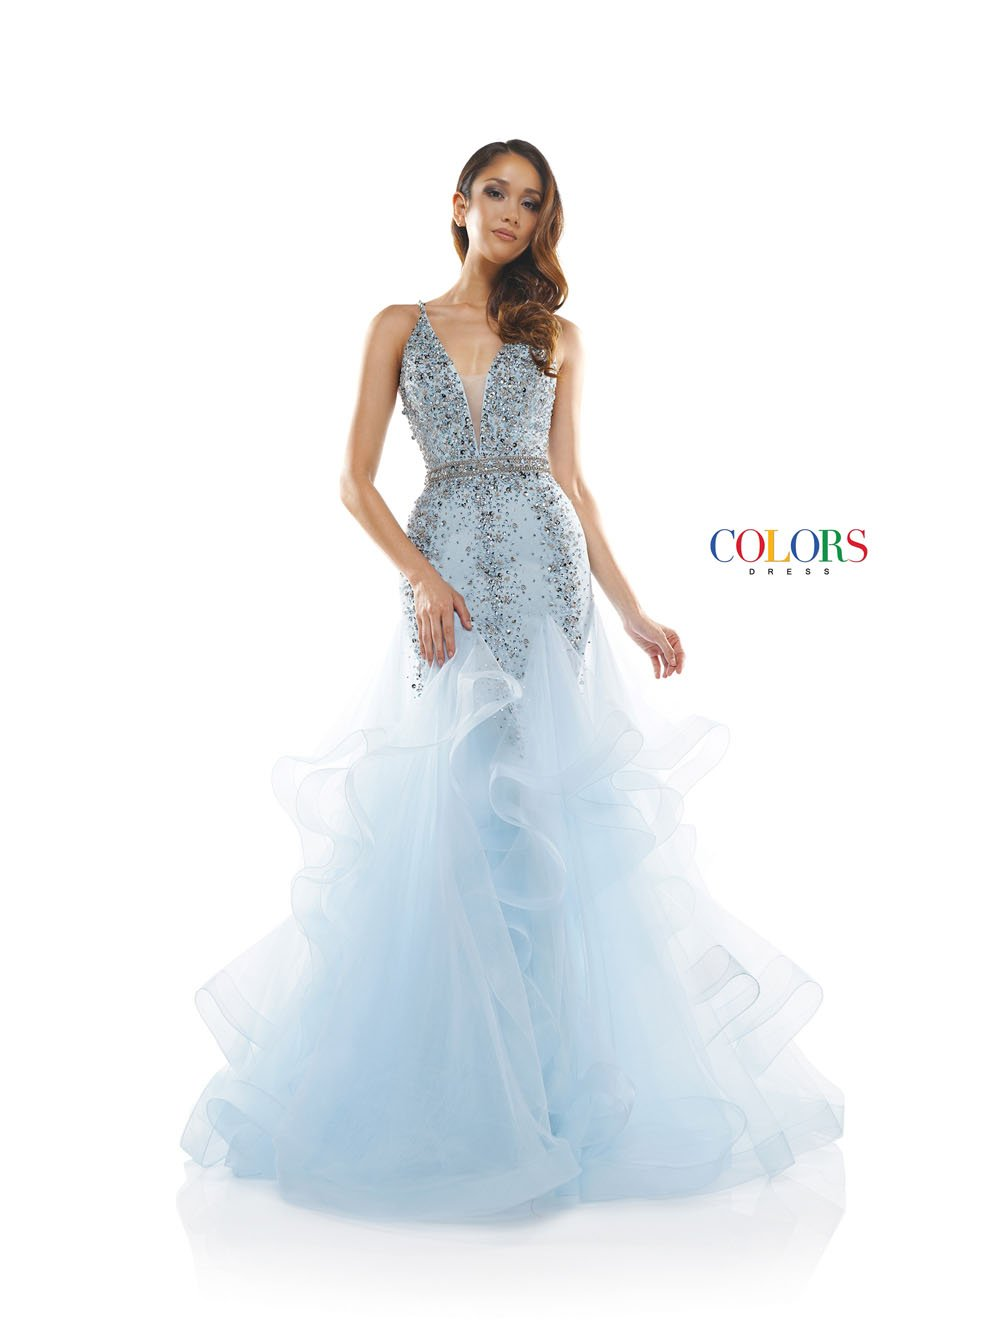 Colors Dress 2301 prom dress images.  Colors 2301 dresses are available in these colors: Baby Blue, Rose Gold, Off White.